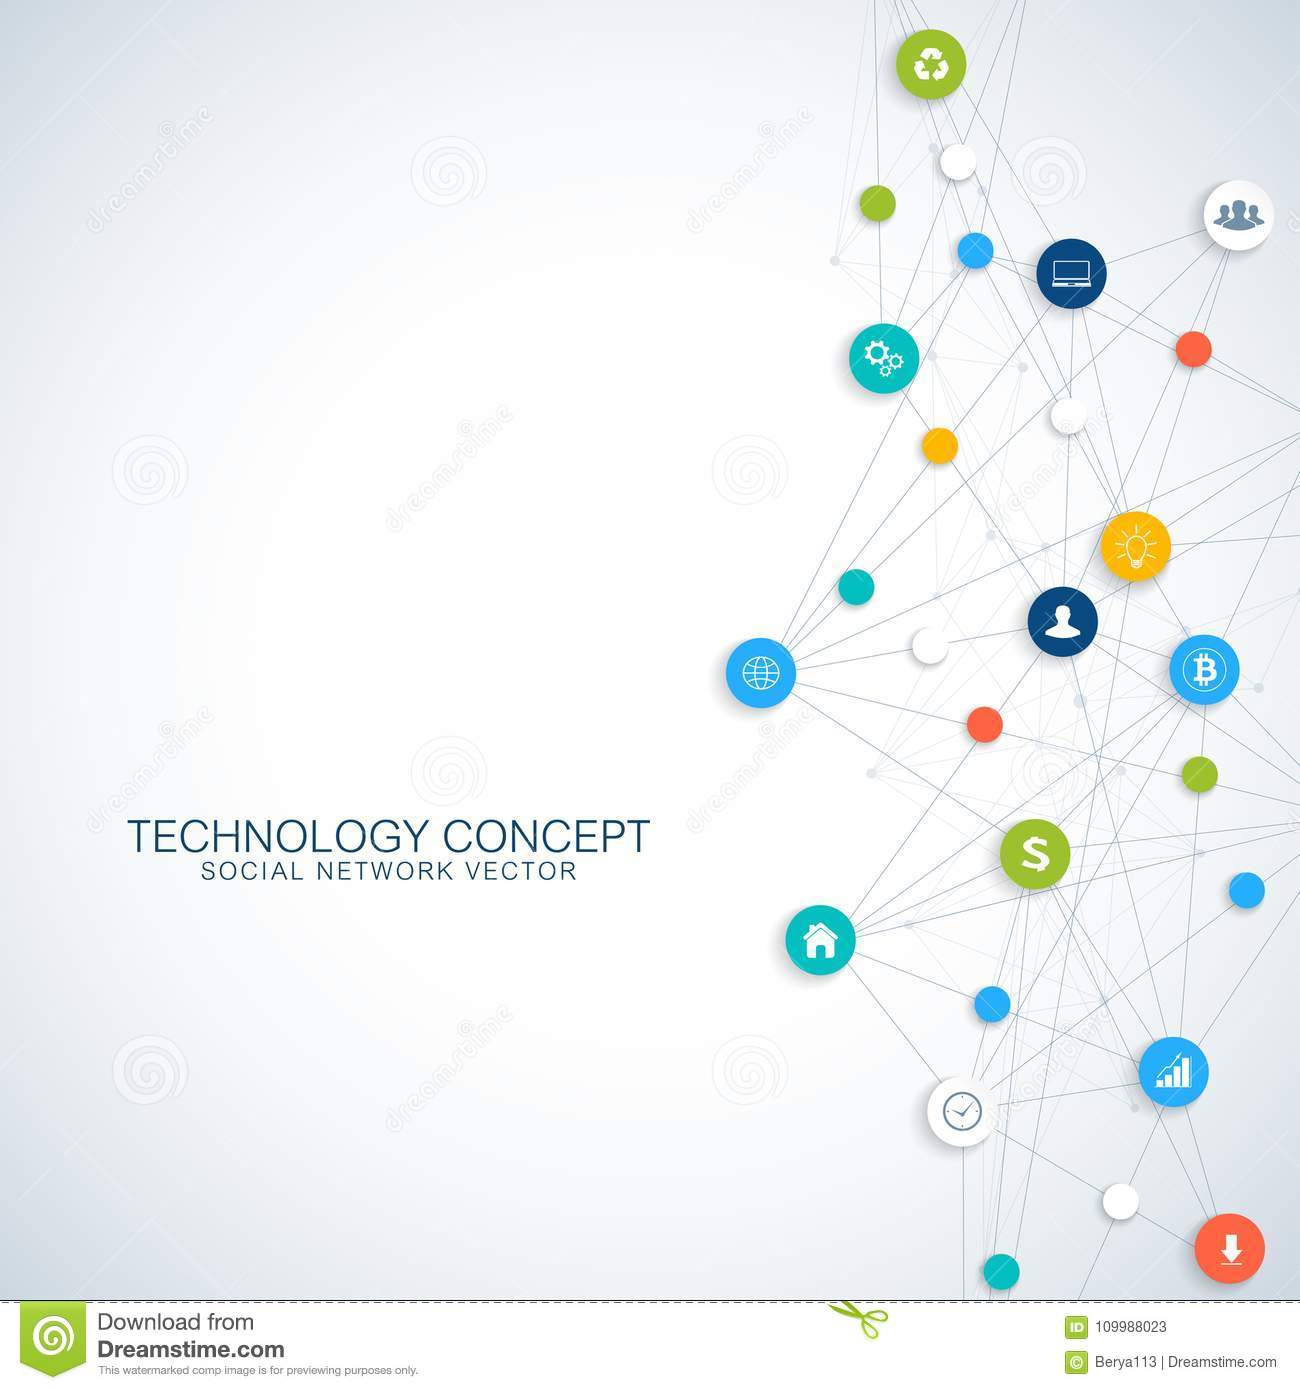 Geometric graphic background communication. Cloud computing and global network connections concept design. Big data